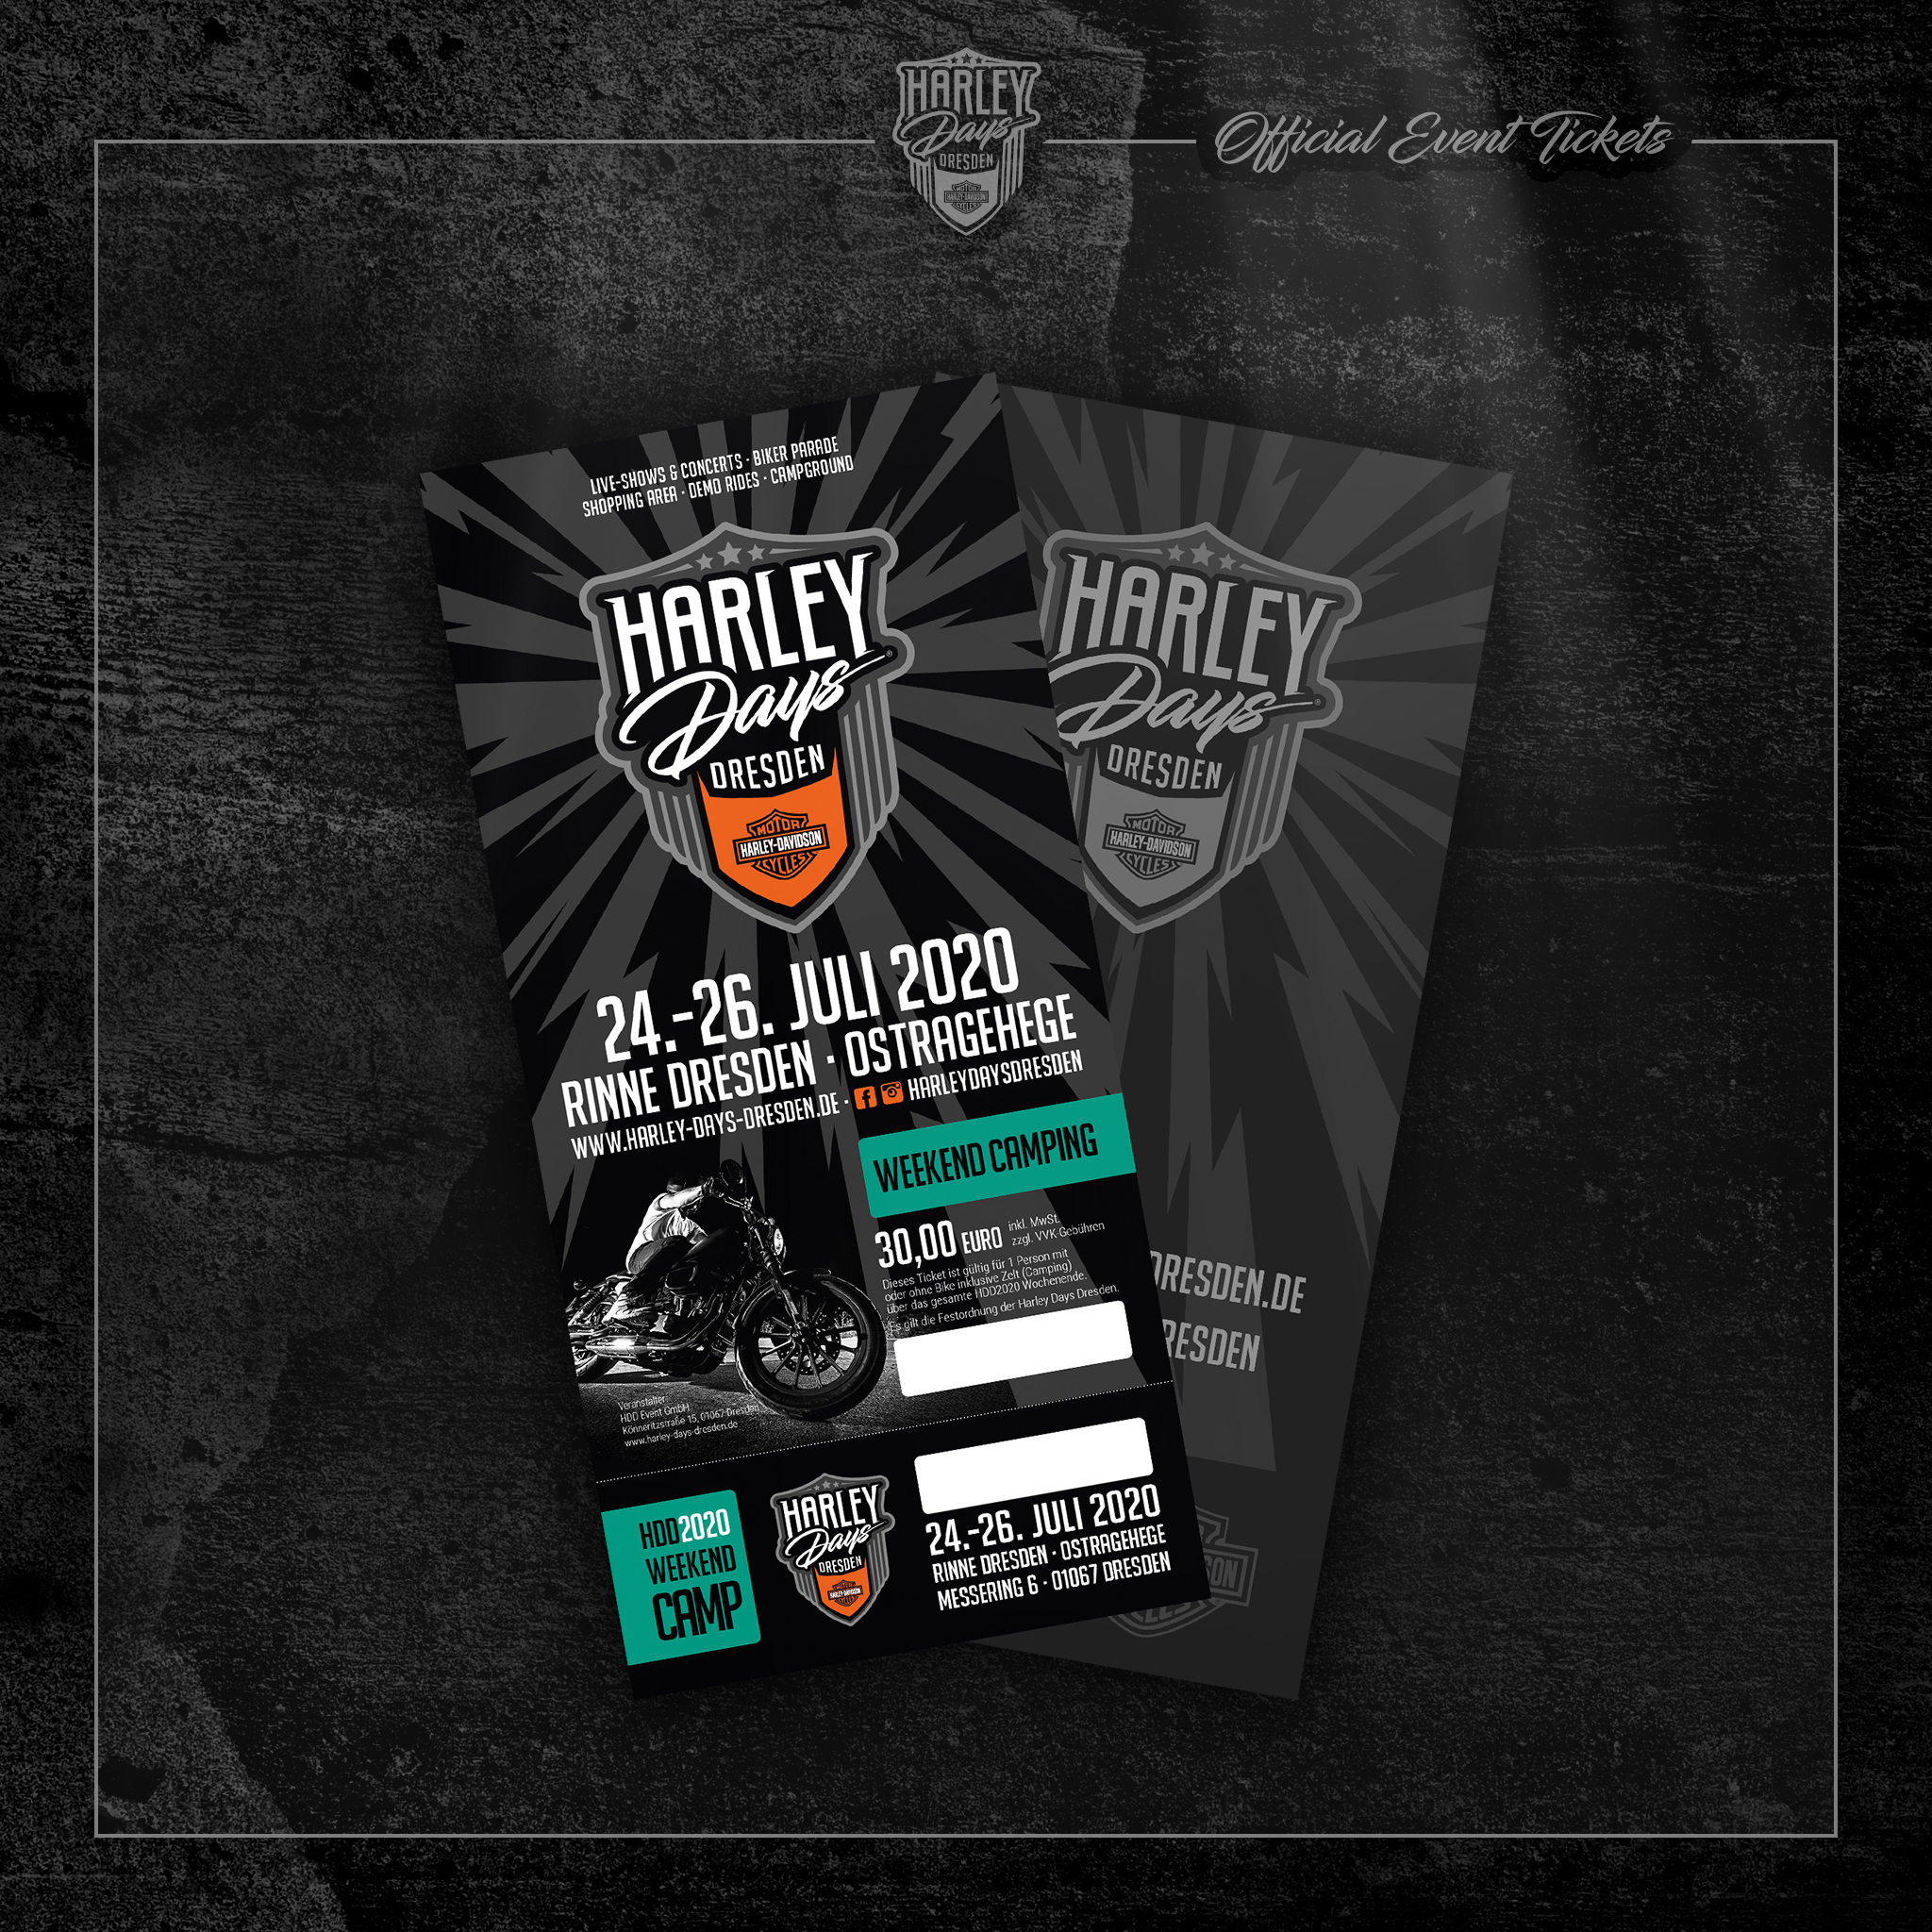 Harley Days Dresden - Ticket Weekend Camping